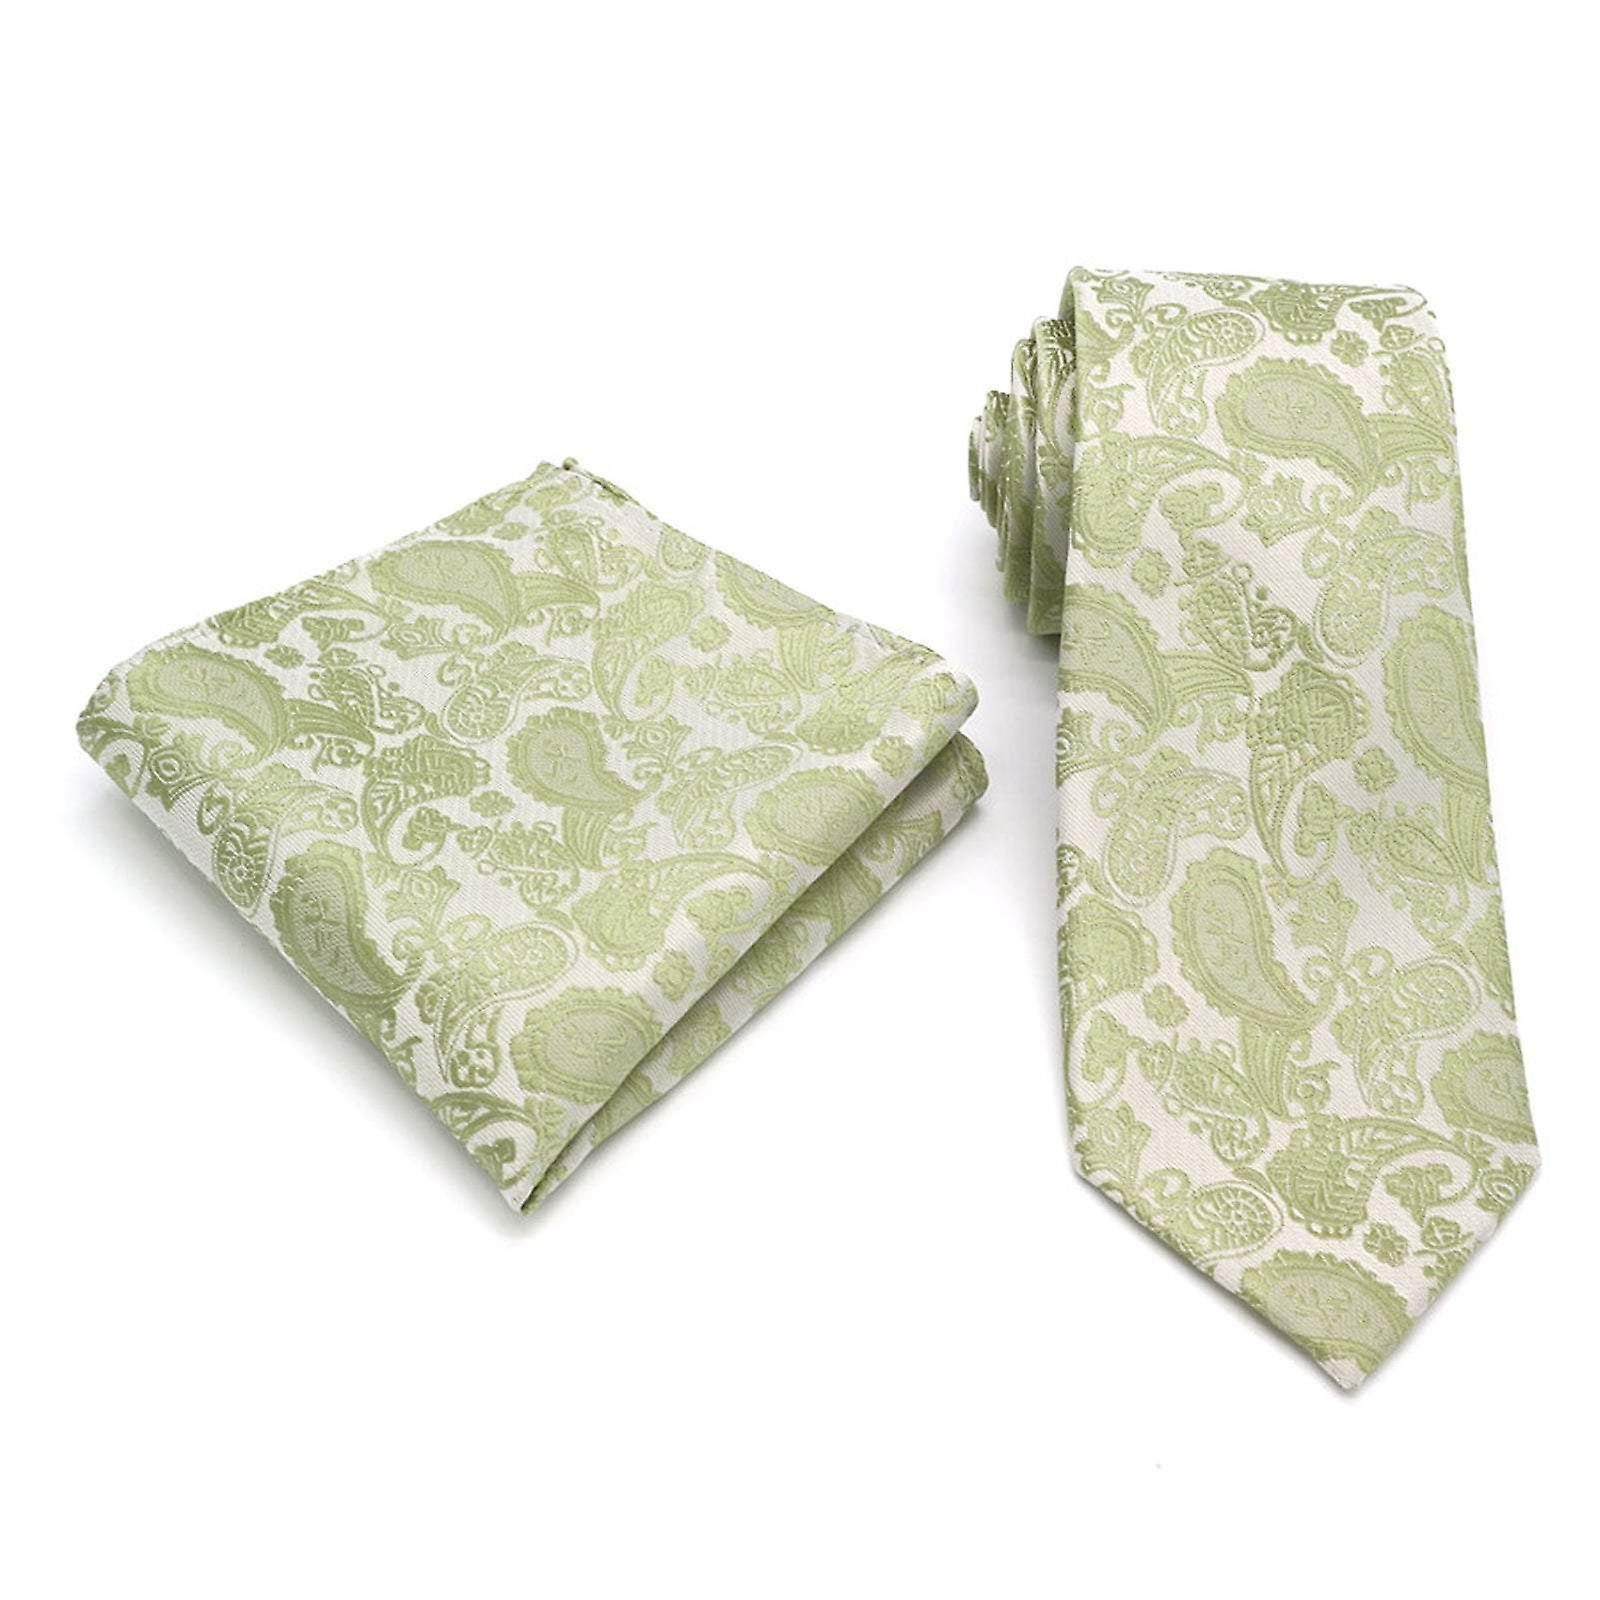 Golden moss green paisley event necktie & pocket square